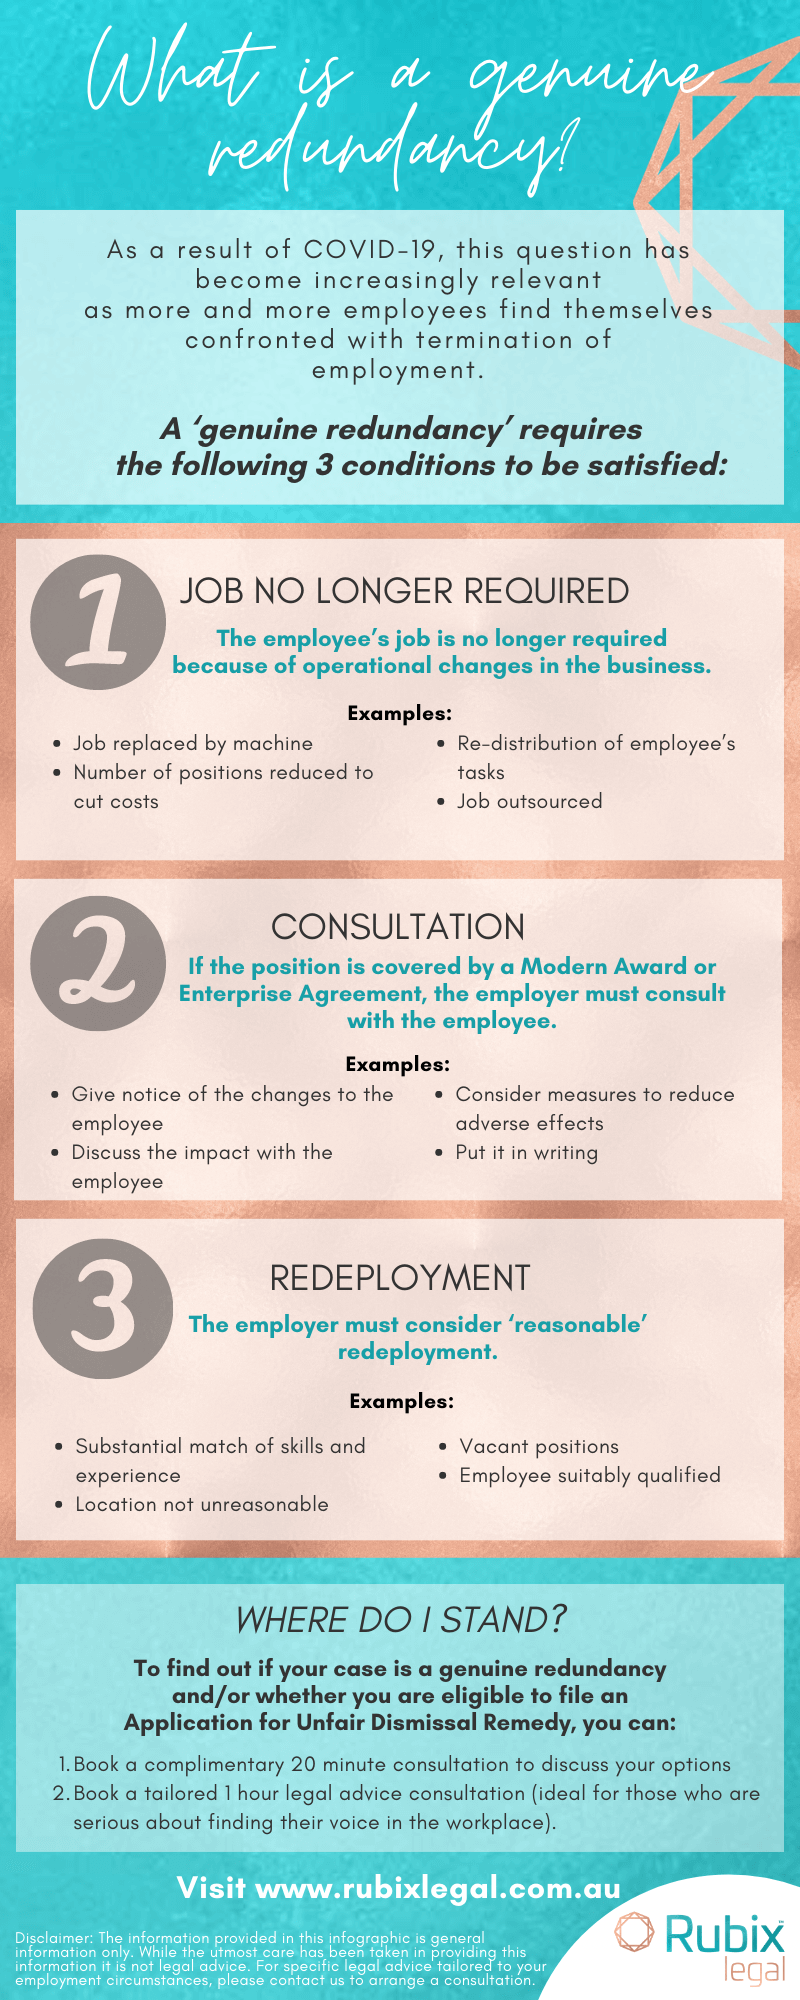 If you have been made redundant and need advice, Gold Coast law firm, Rubix Legal, explains how to recognise whether your redundancy is genuine, in this helpful infographic.